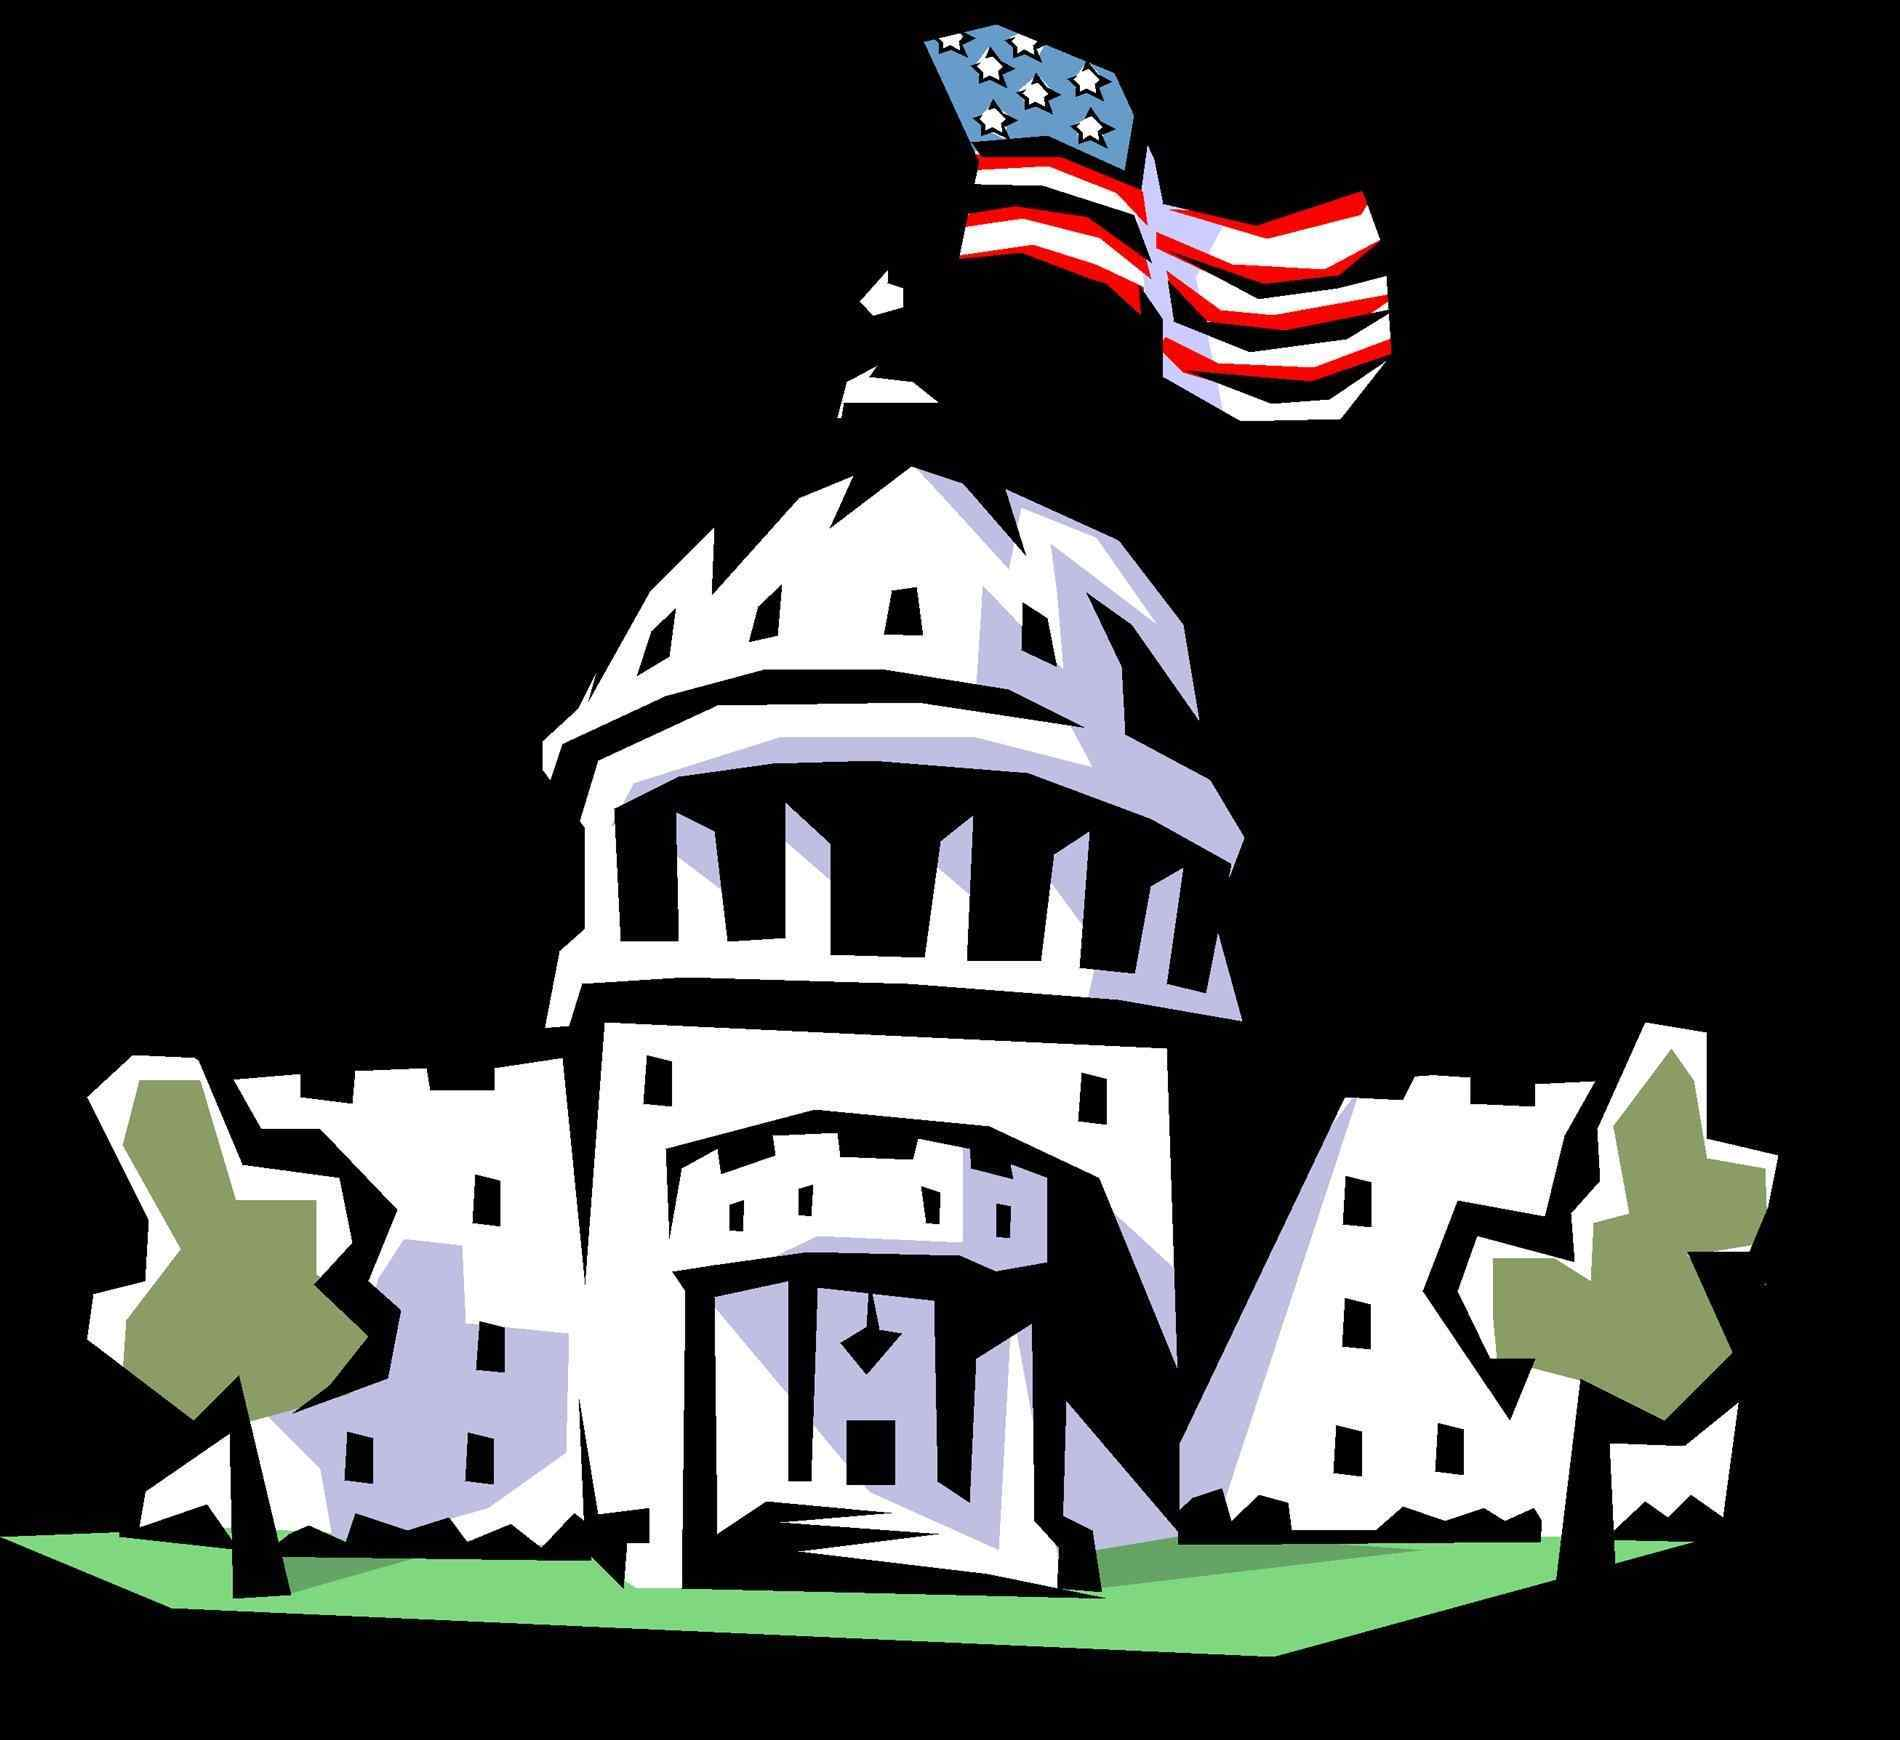 Congress clipart congress house. Building us pencil and